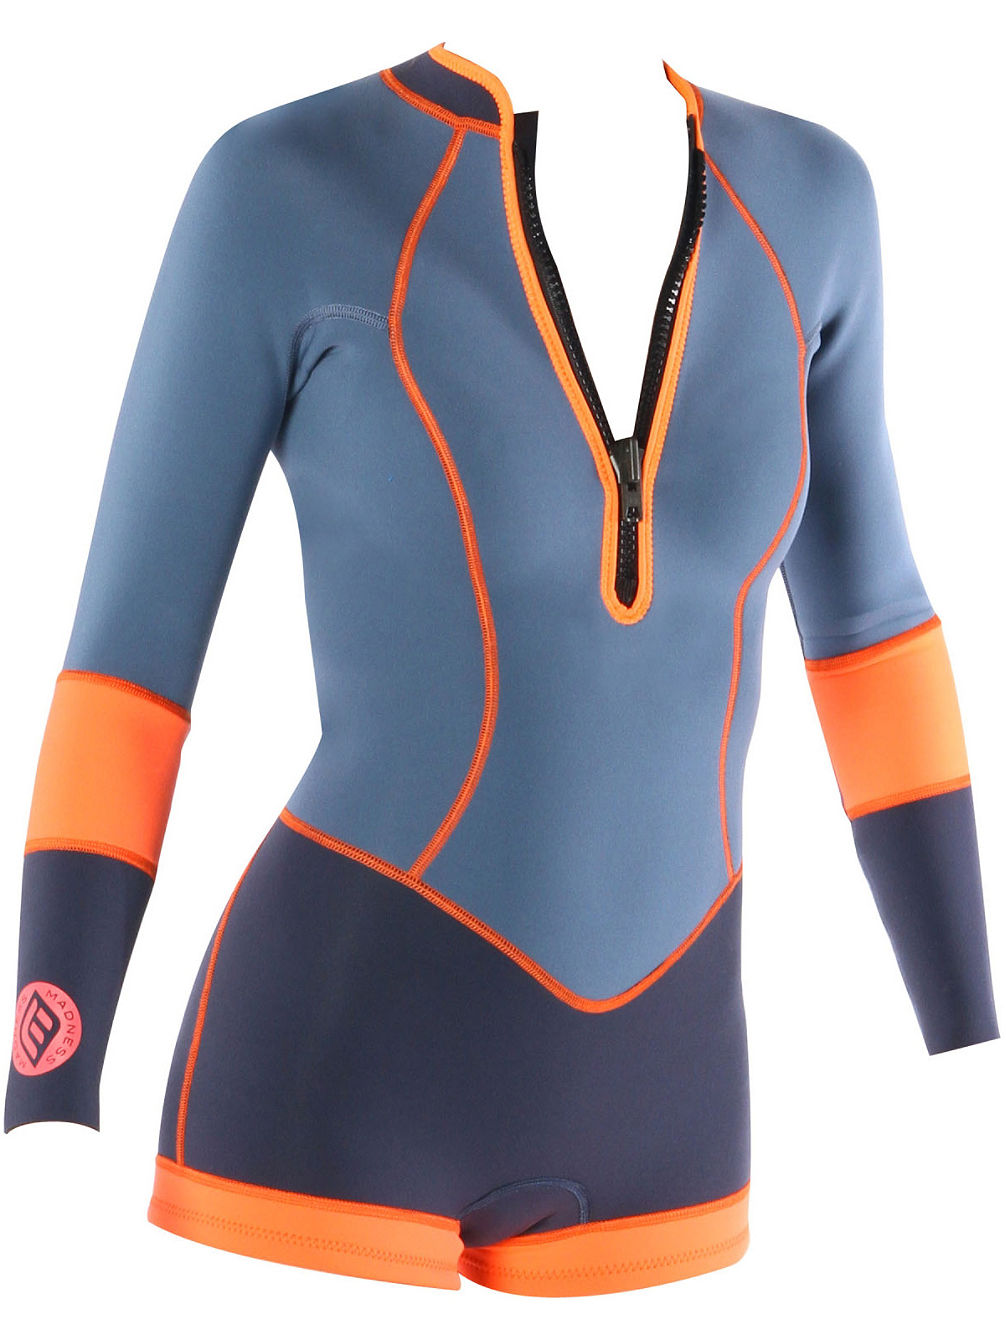 Unlimited 2/2 Shorty Wetsuit